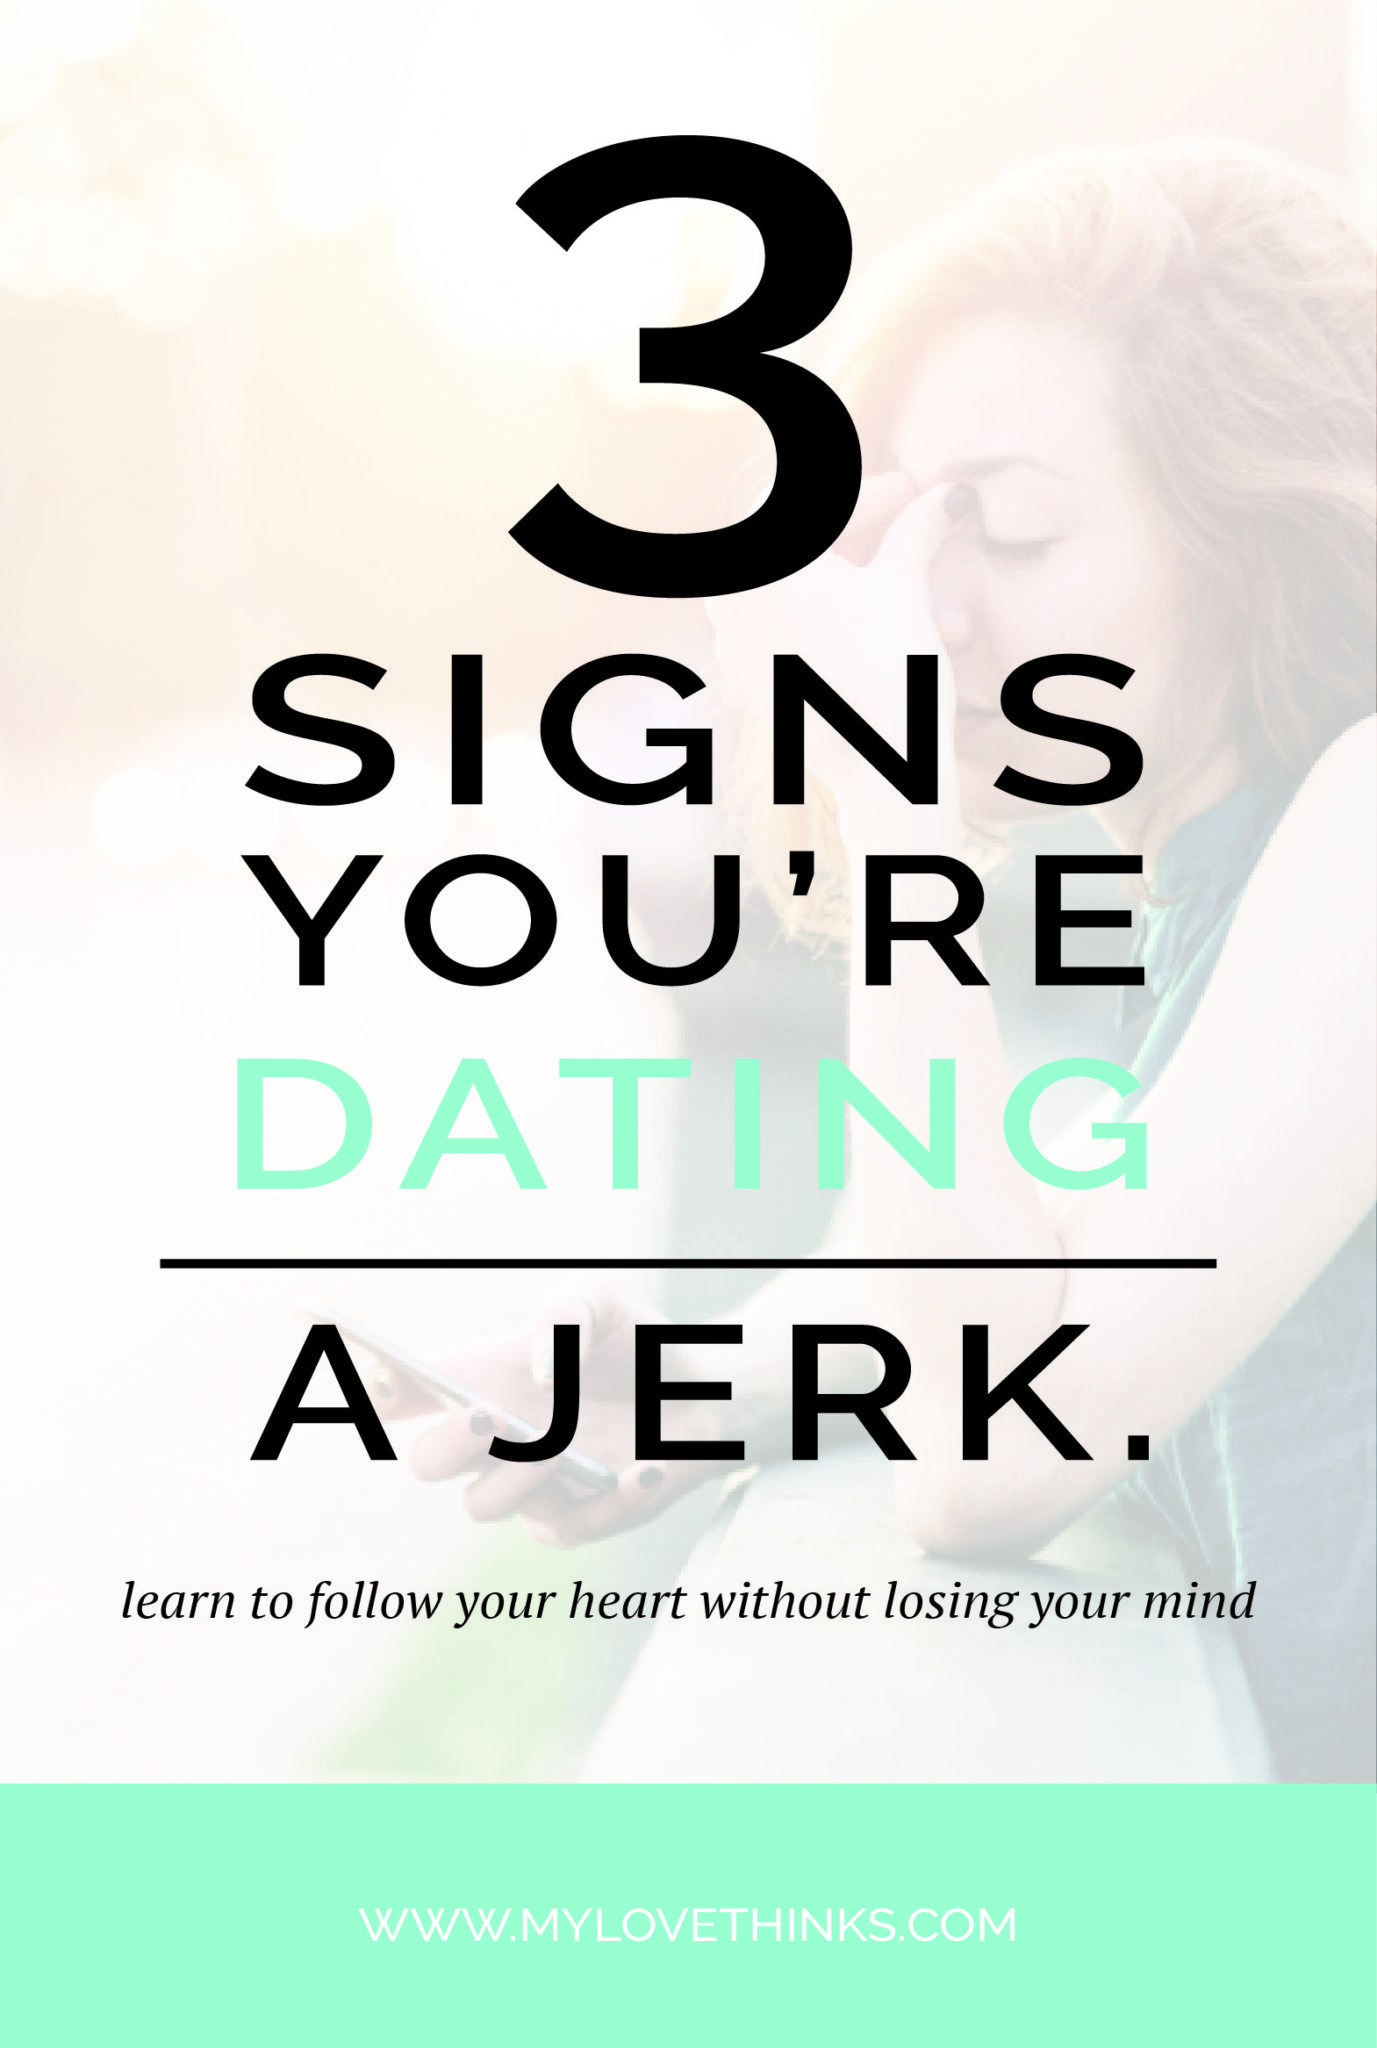 3 signs you're dating a jerk